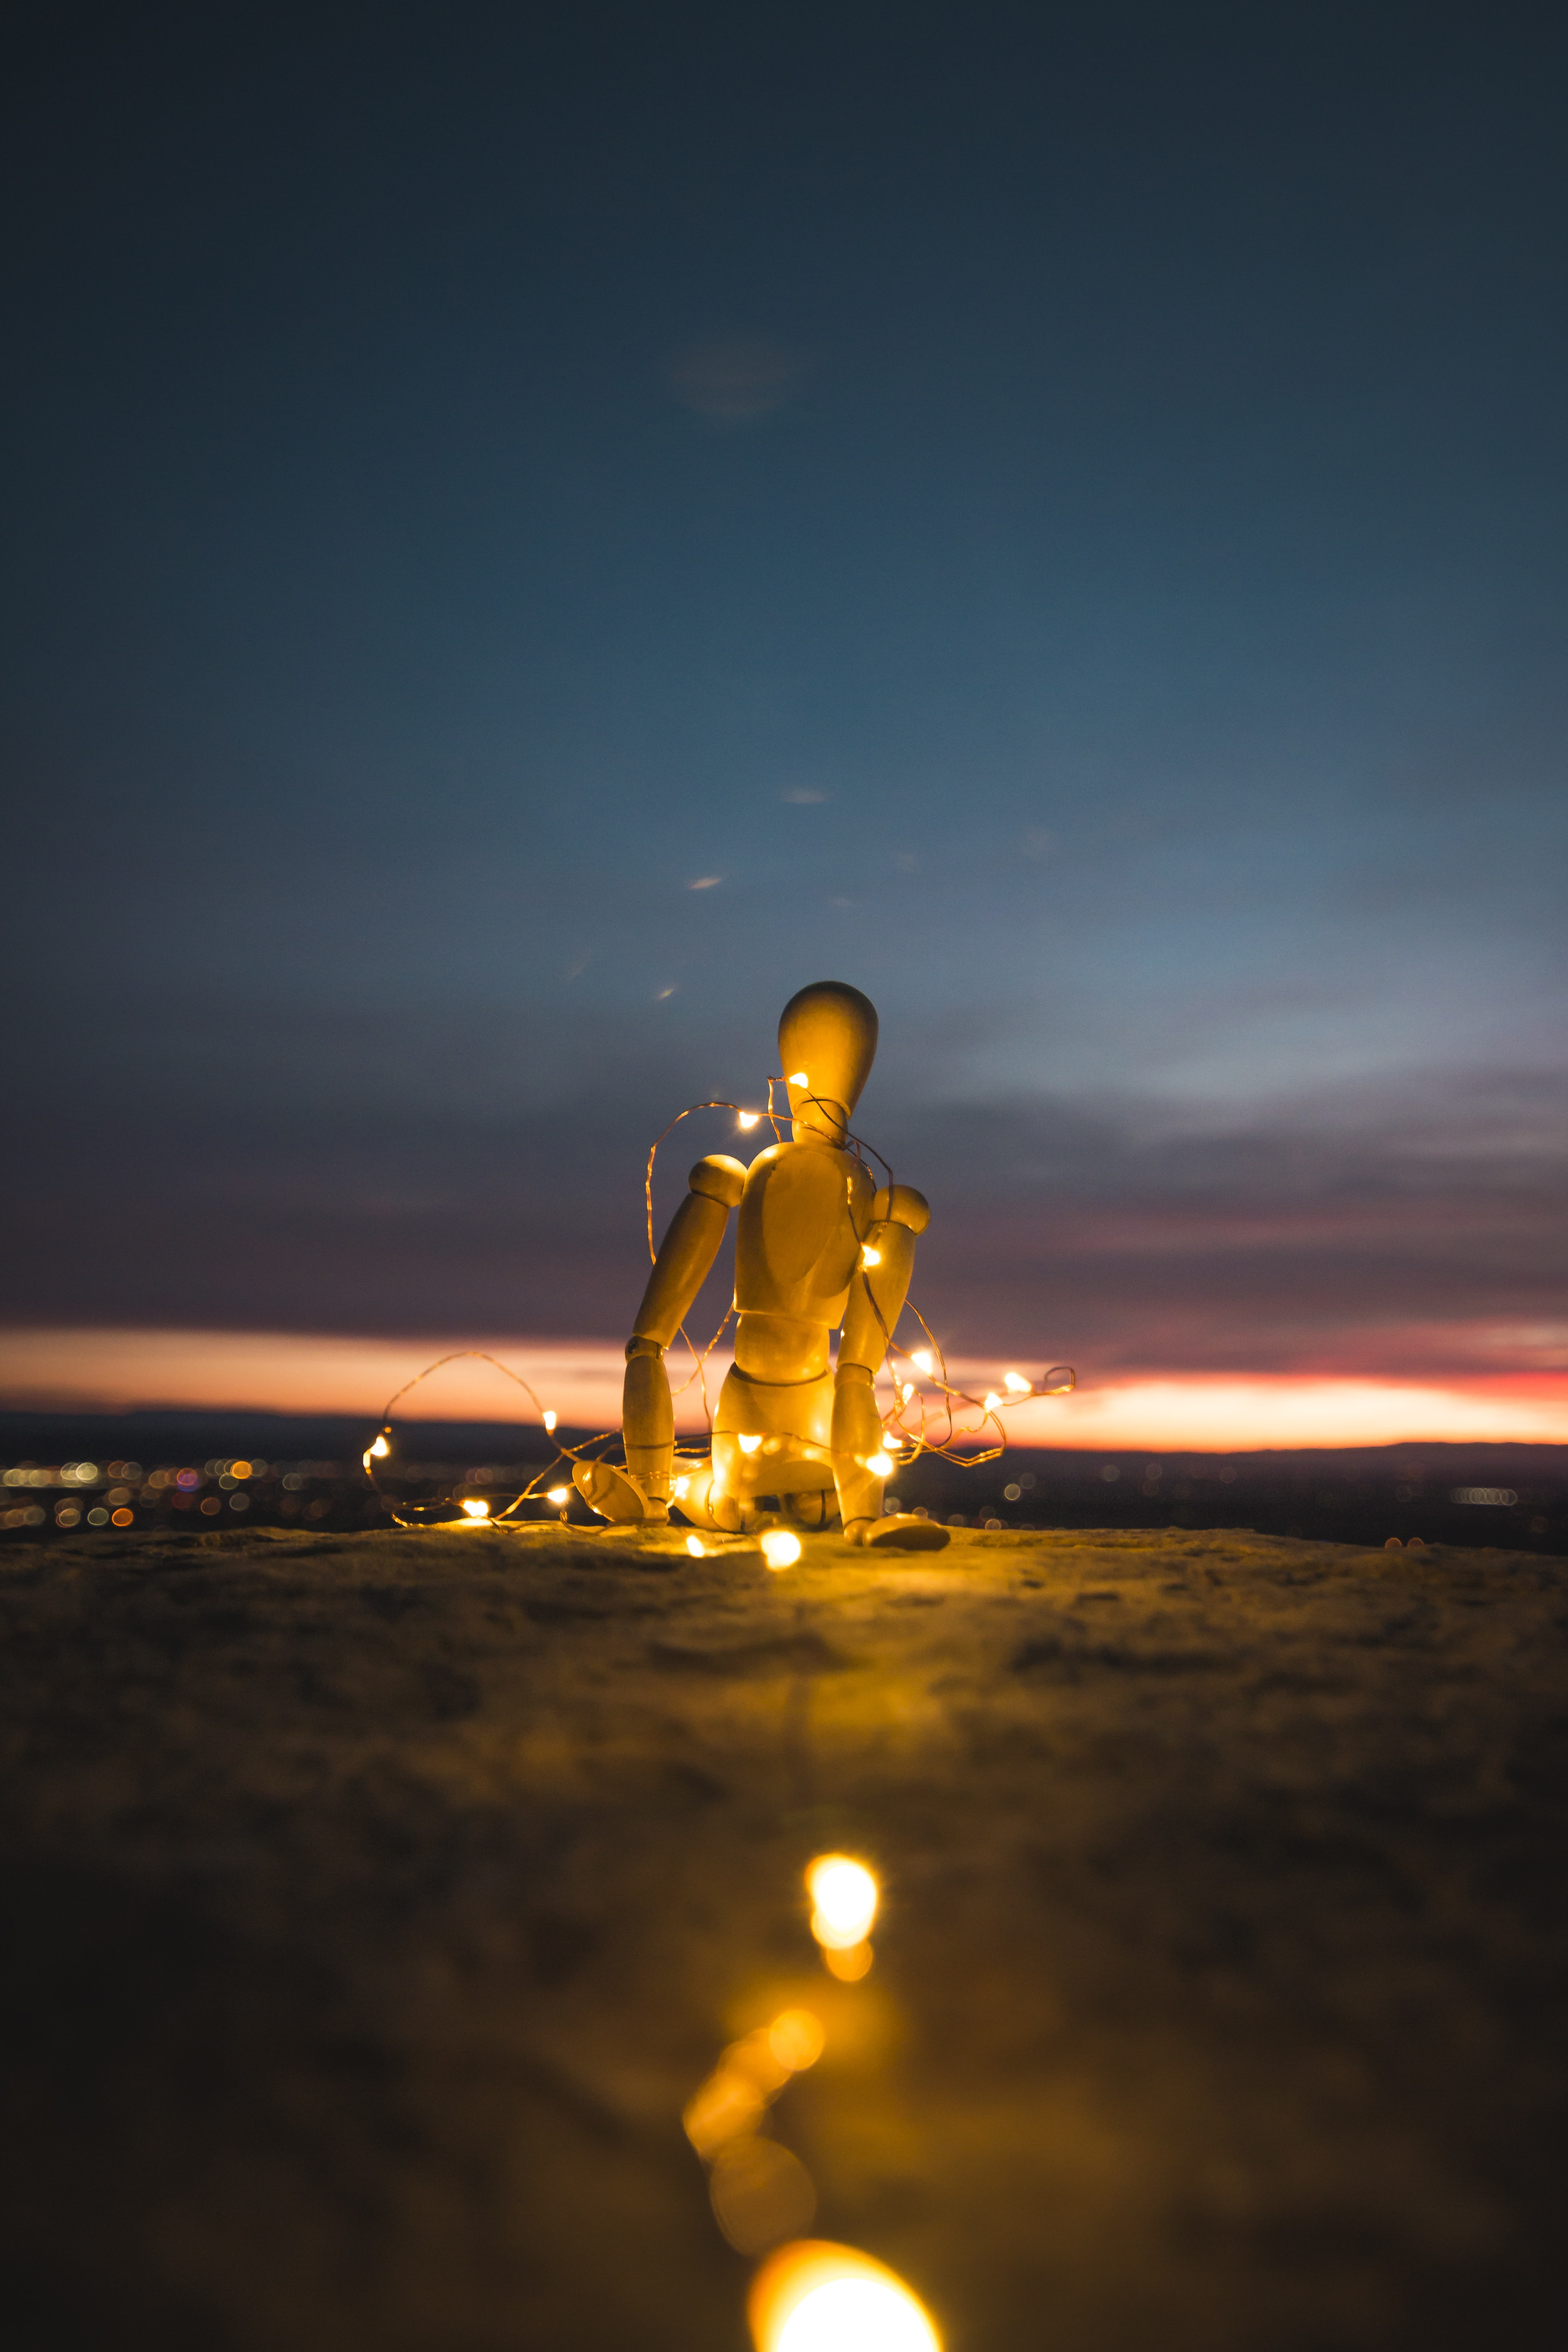 marionette doll on stand with LED string lights